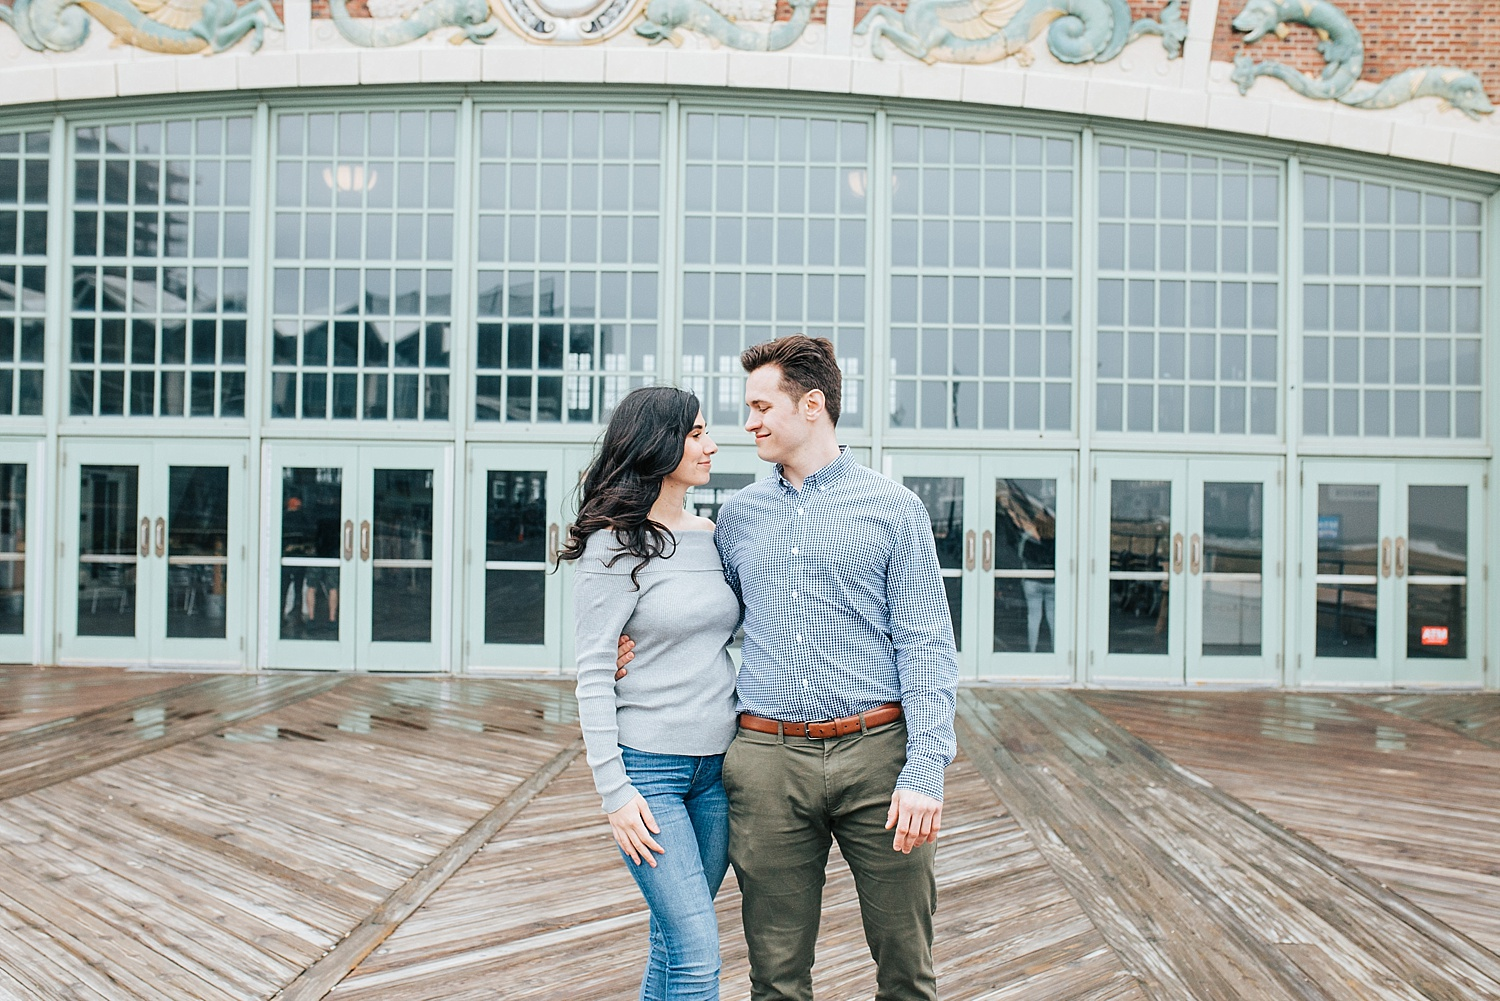 asbury park engagement photos, asbury park engagement pictures, asbury park boardwalk engagement photos, asbury park boardwalk engagement pictures, asbury park photographers, new jersey wedding photographers, New York wedding photographers, boardwalk engagement photos, new jersey engagement photo ideas, asbury park engagement, ashley izquierdo